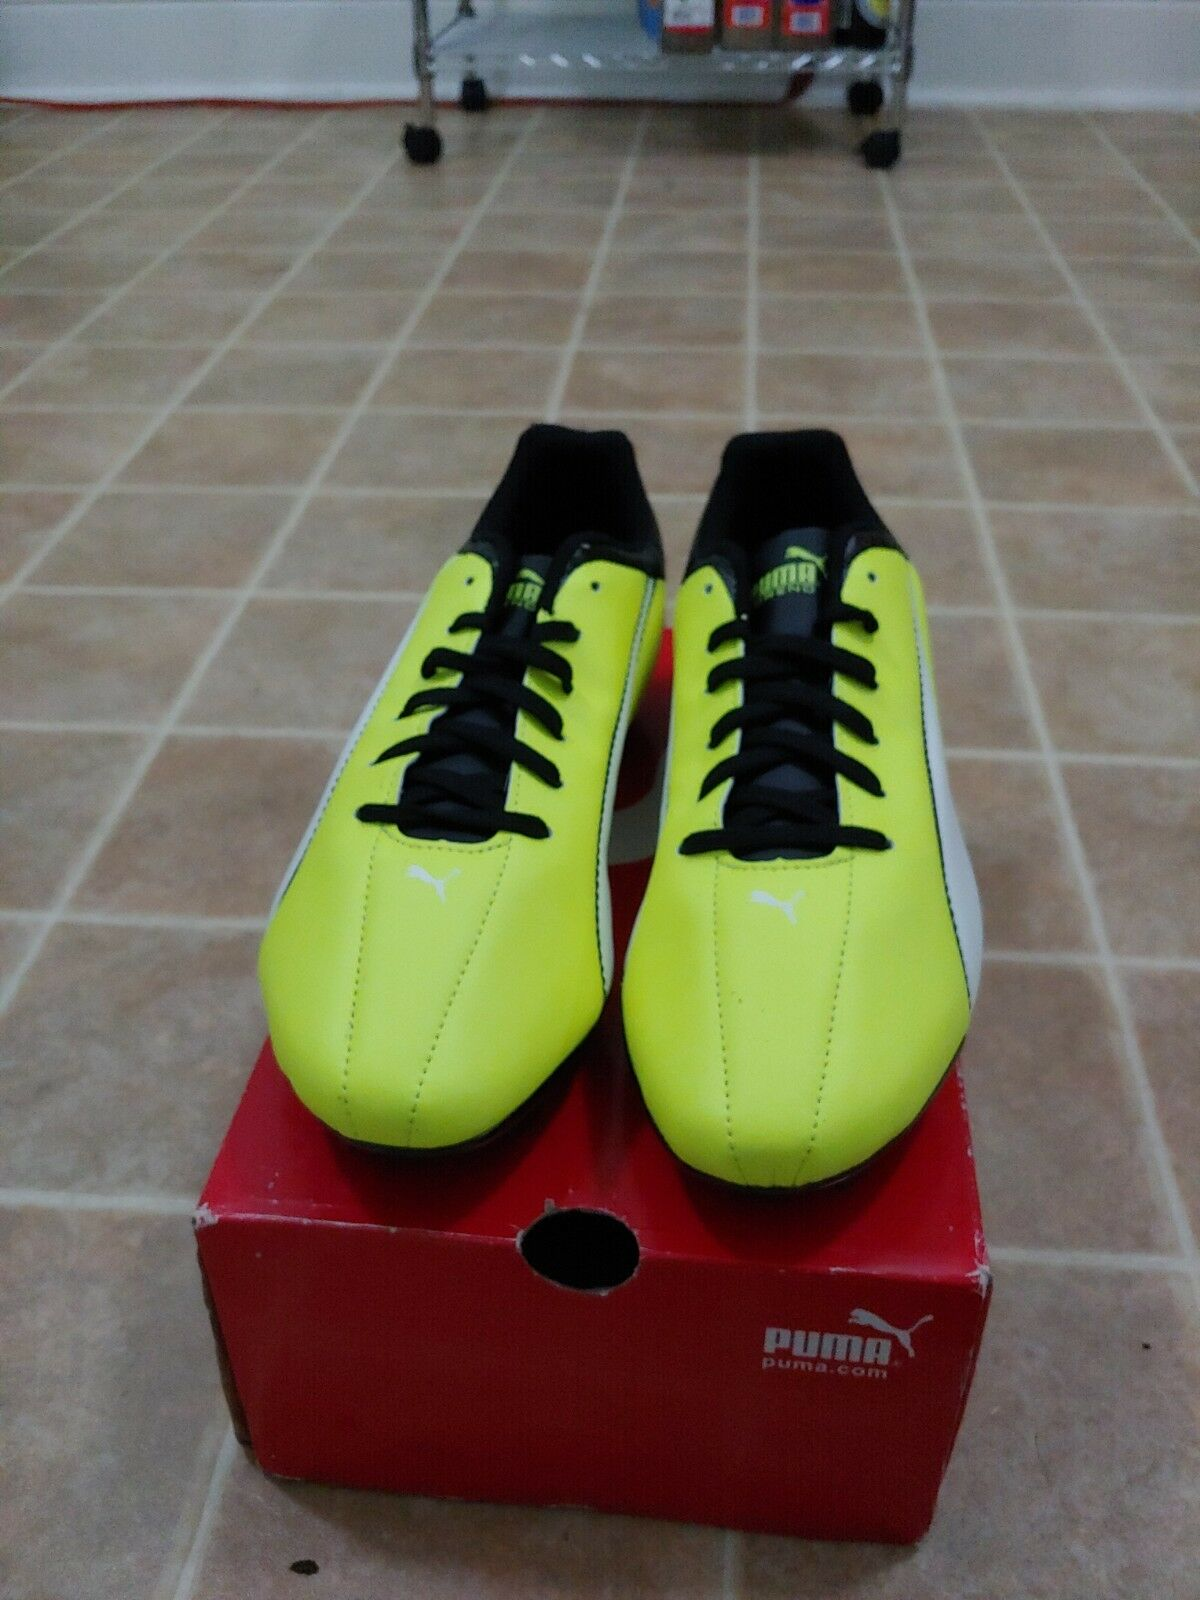 Puma Evo Power Vigor Mens Cleats Black Leather Athletic Soccer Cleats Mens Shoes f04284